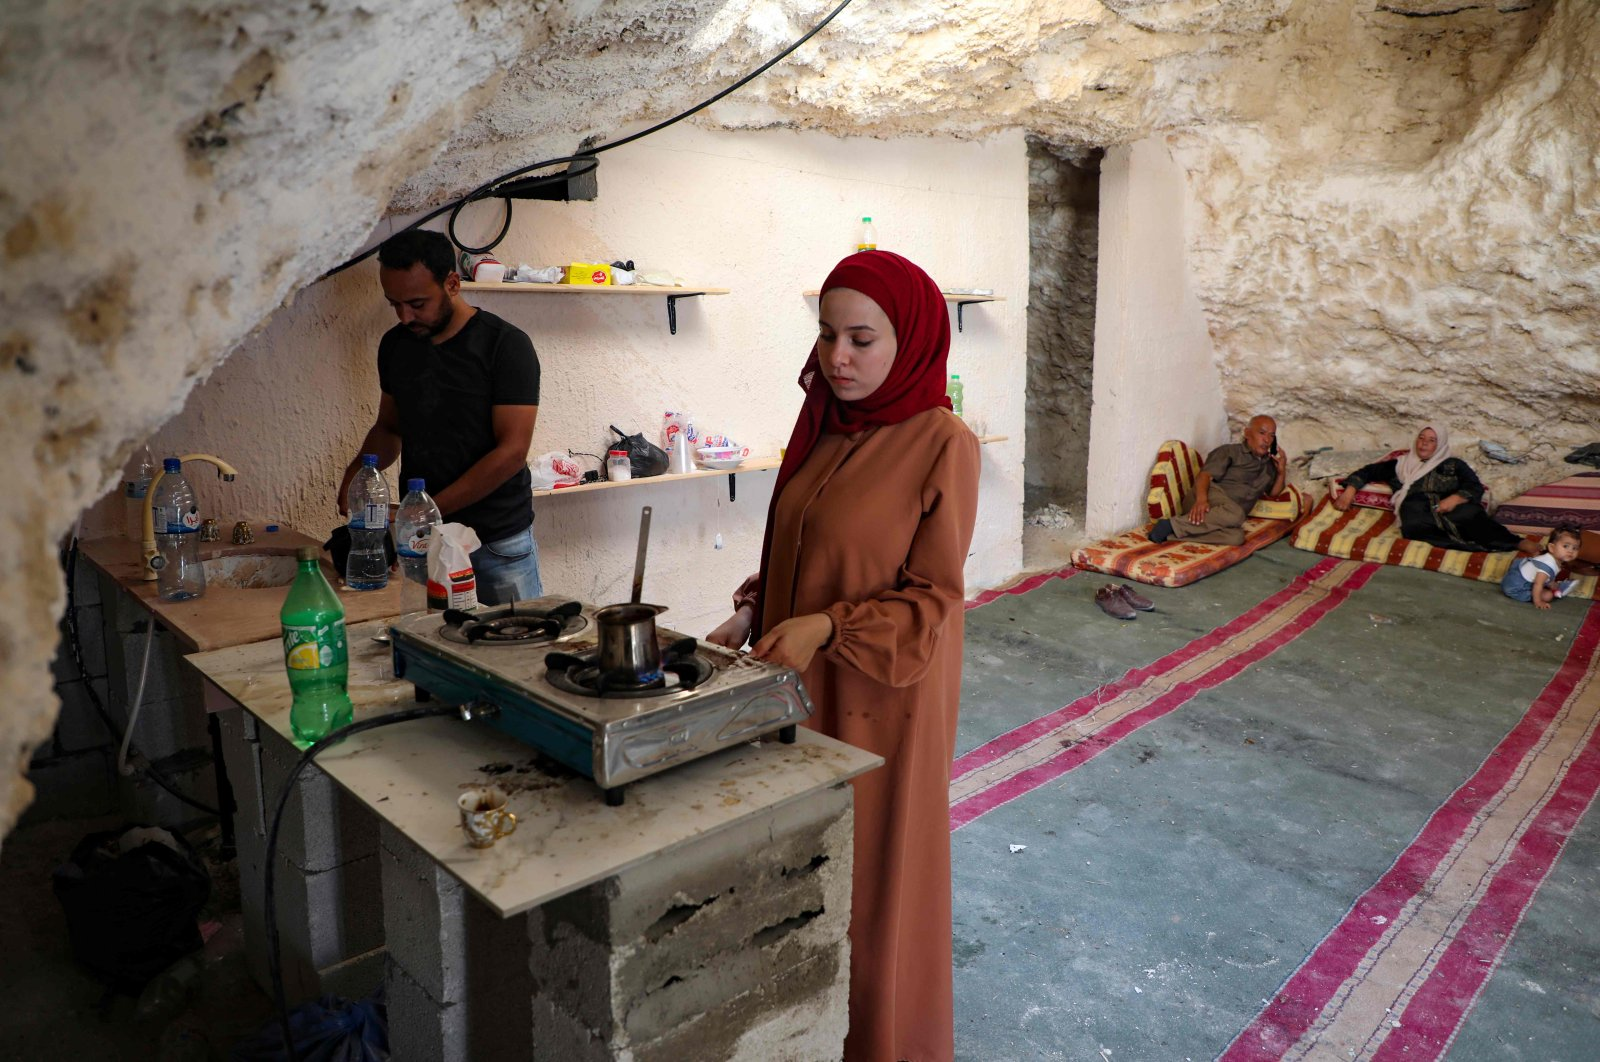 Ahmed Amarneh and his wife prepare coffee at his home, built in a cave in the village of Farasin, west of Jenin, in the northern occupied West Bank, Aug. 4, 2020. (AFP Photo)